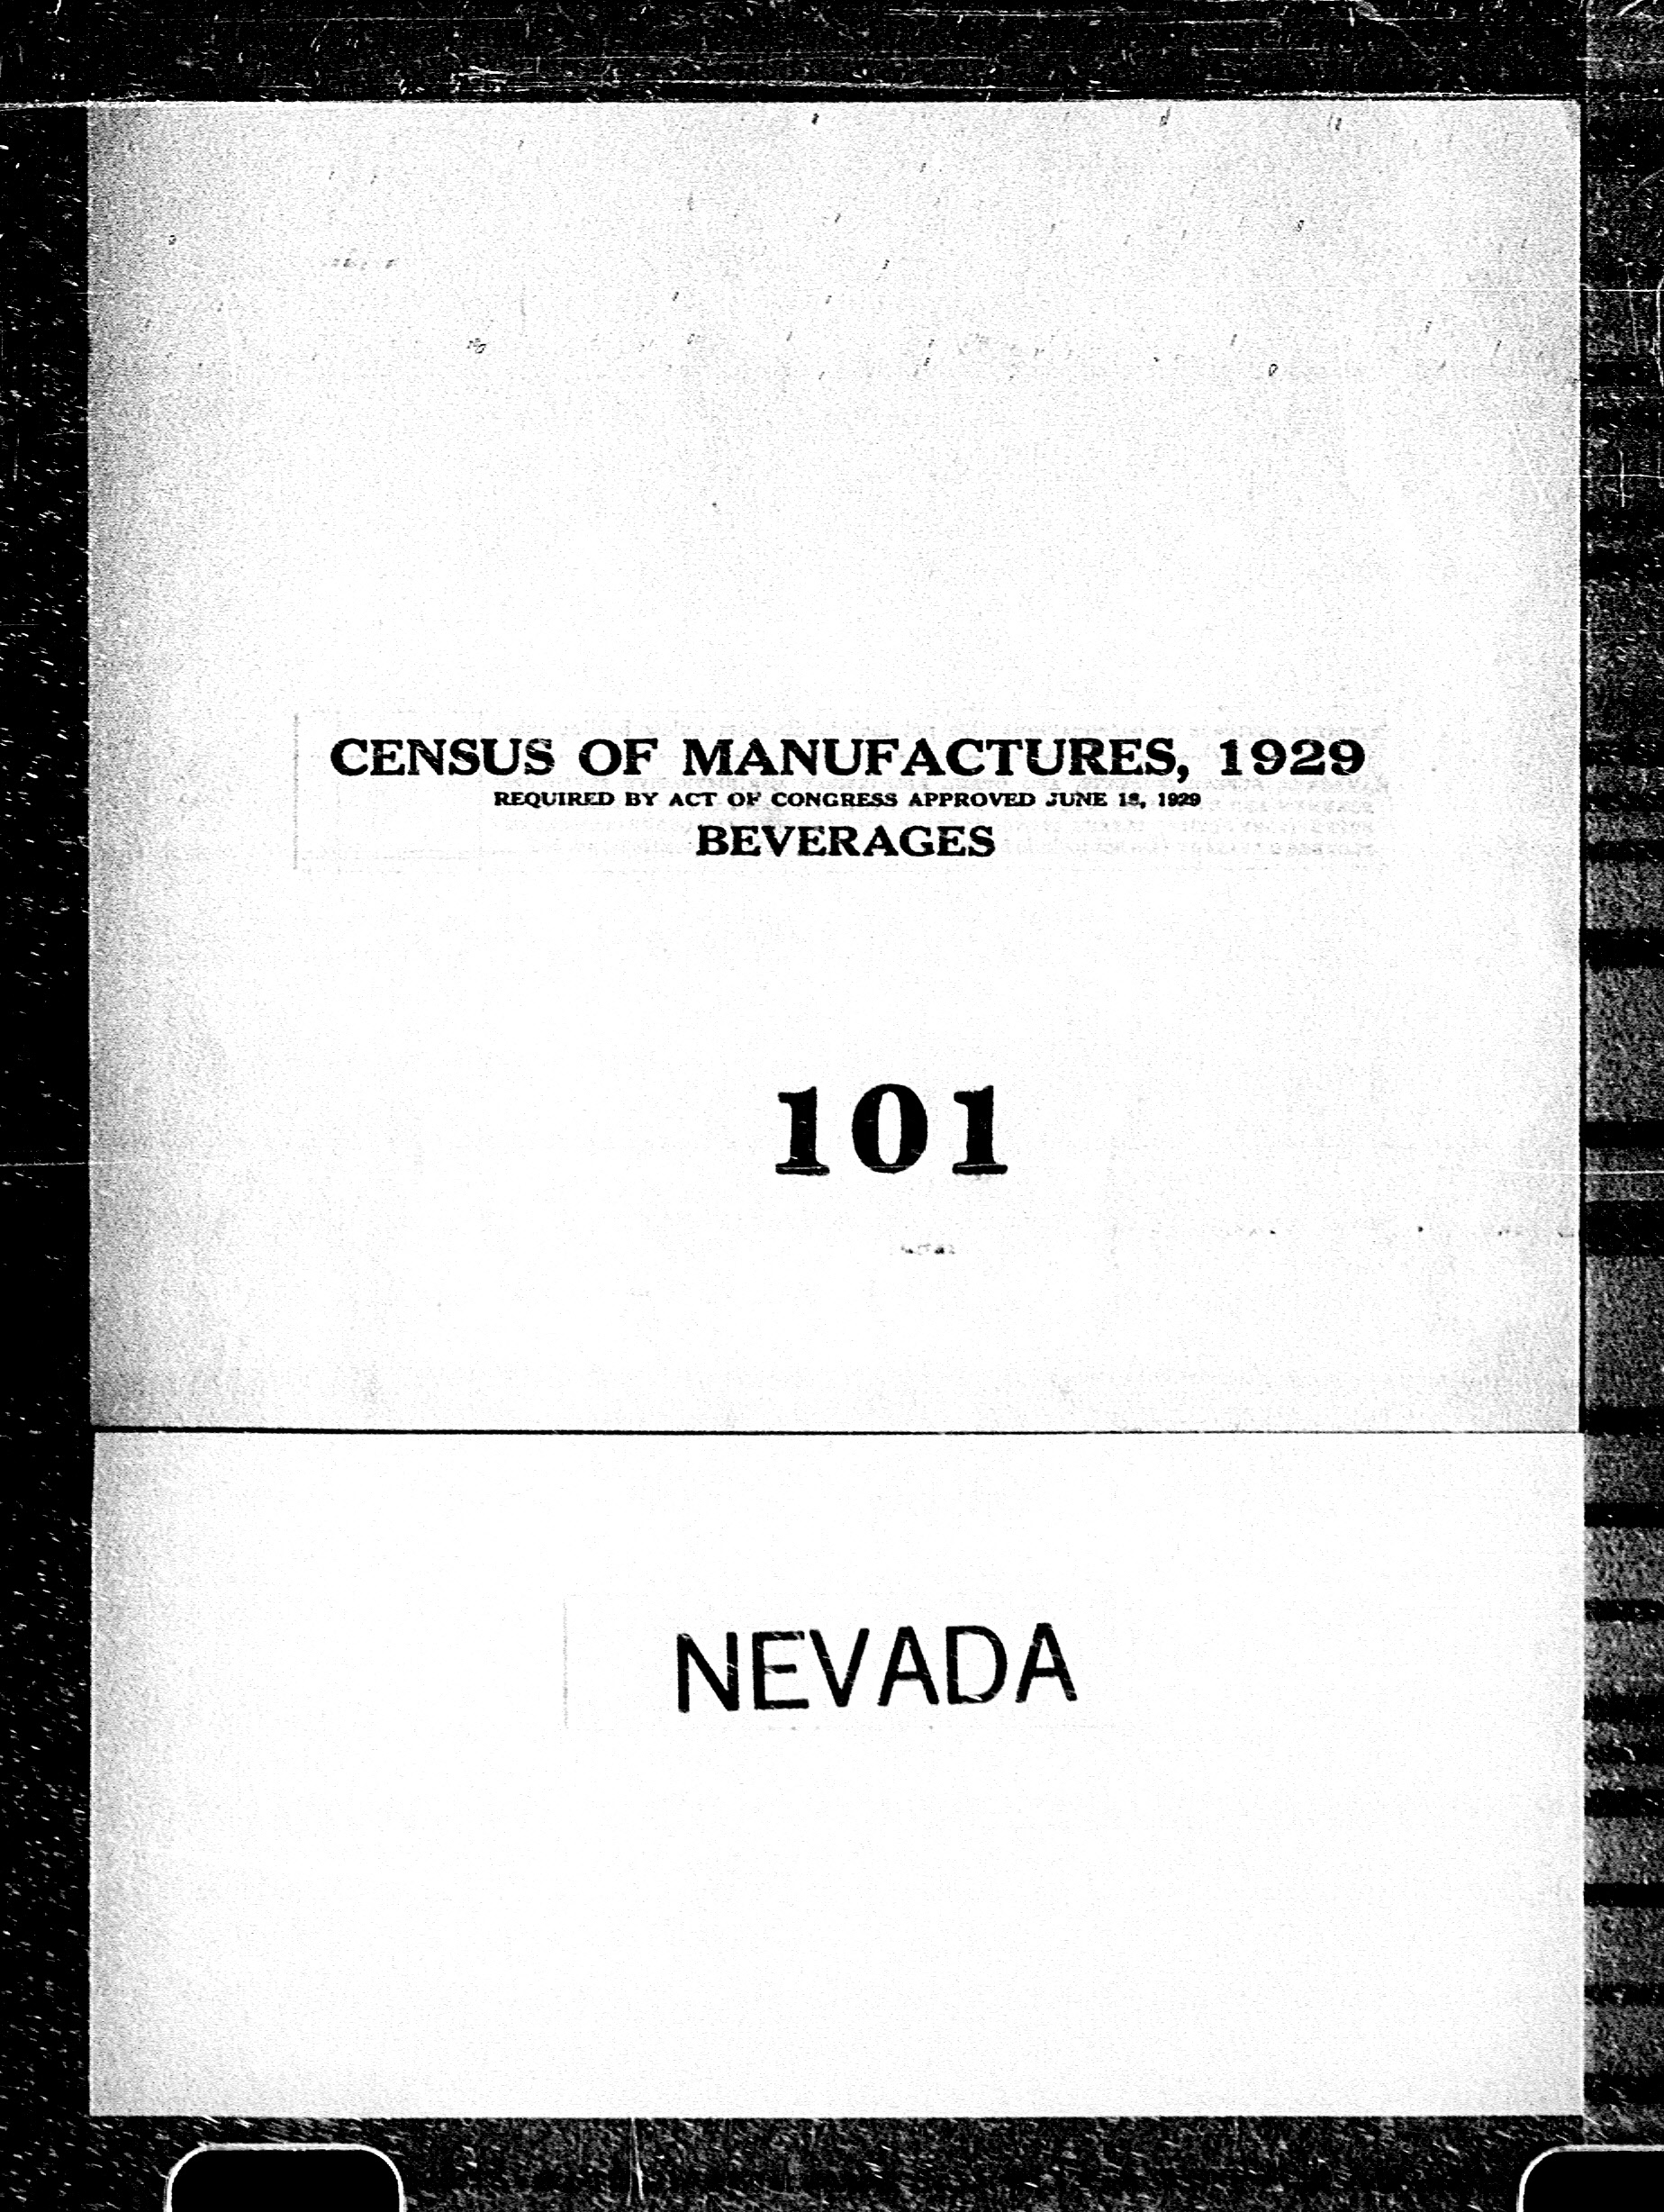 Nevada: Industry No. 101 - Beverages